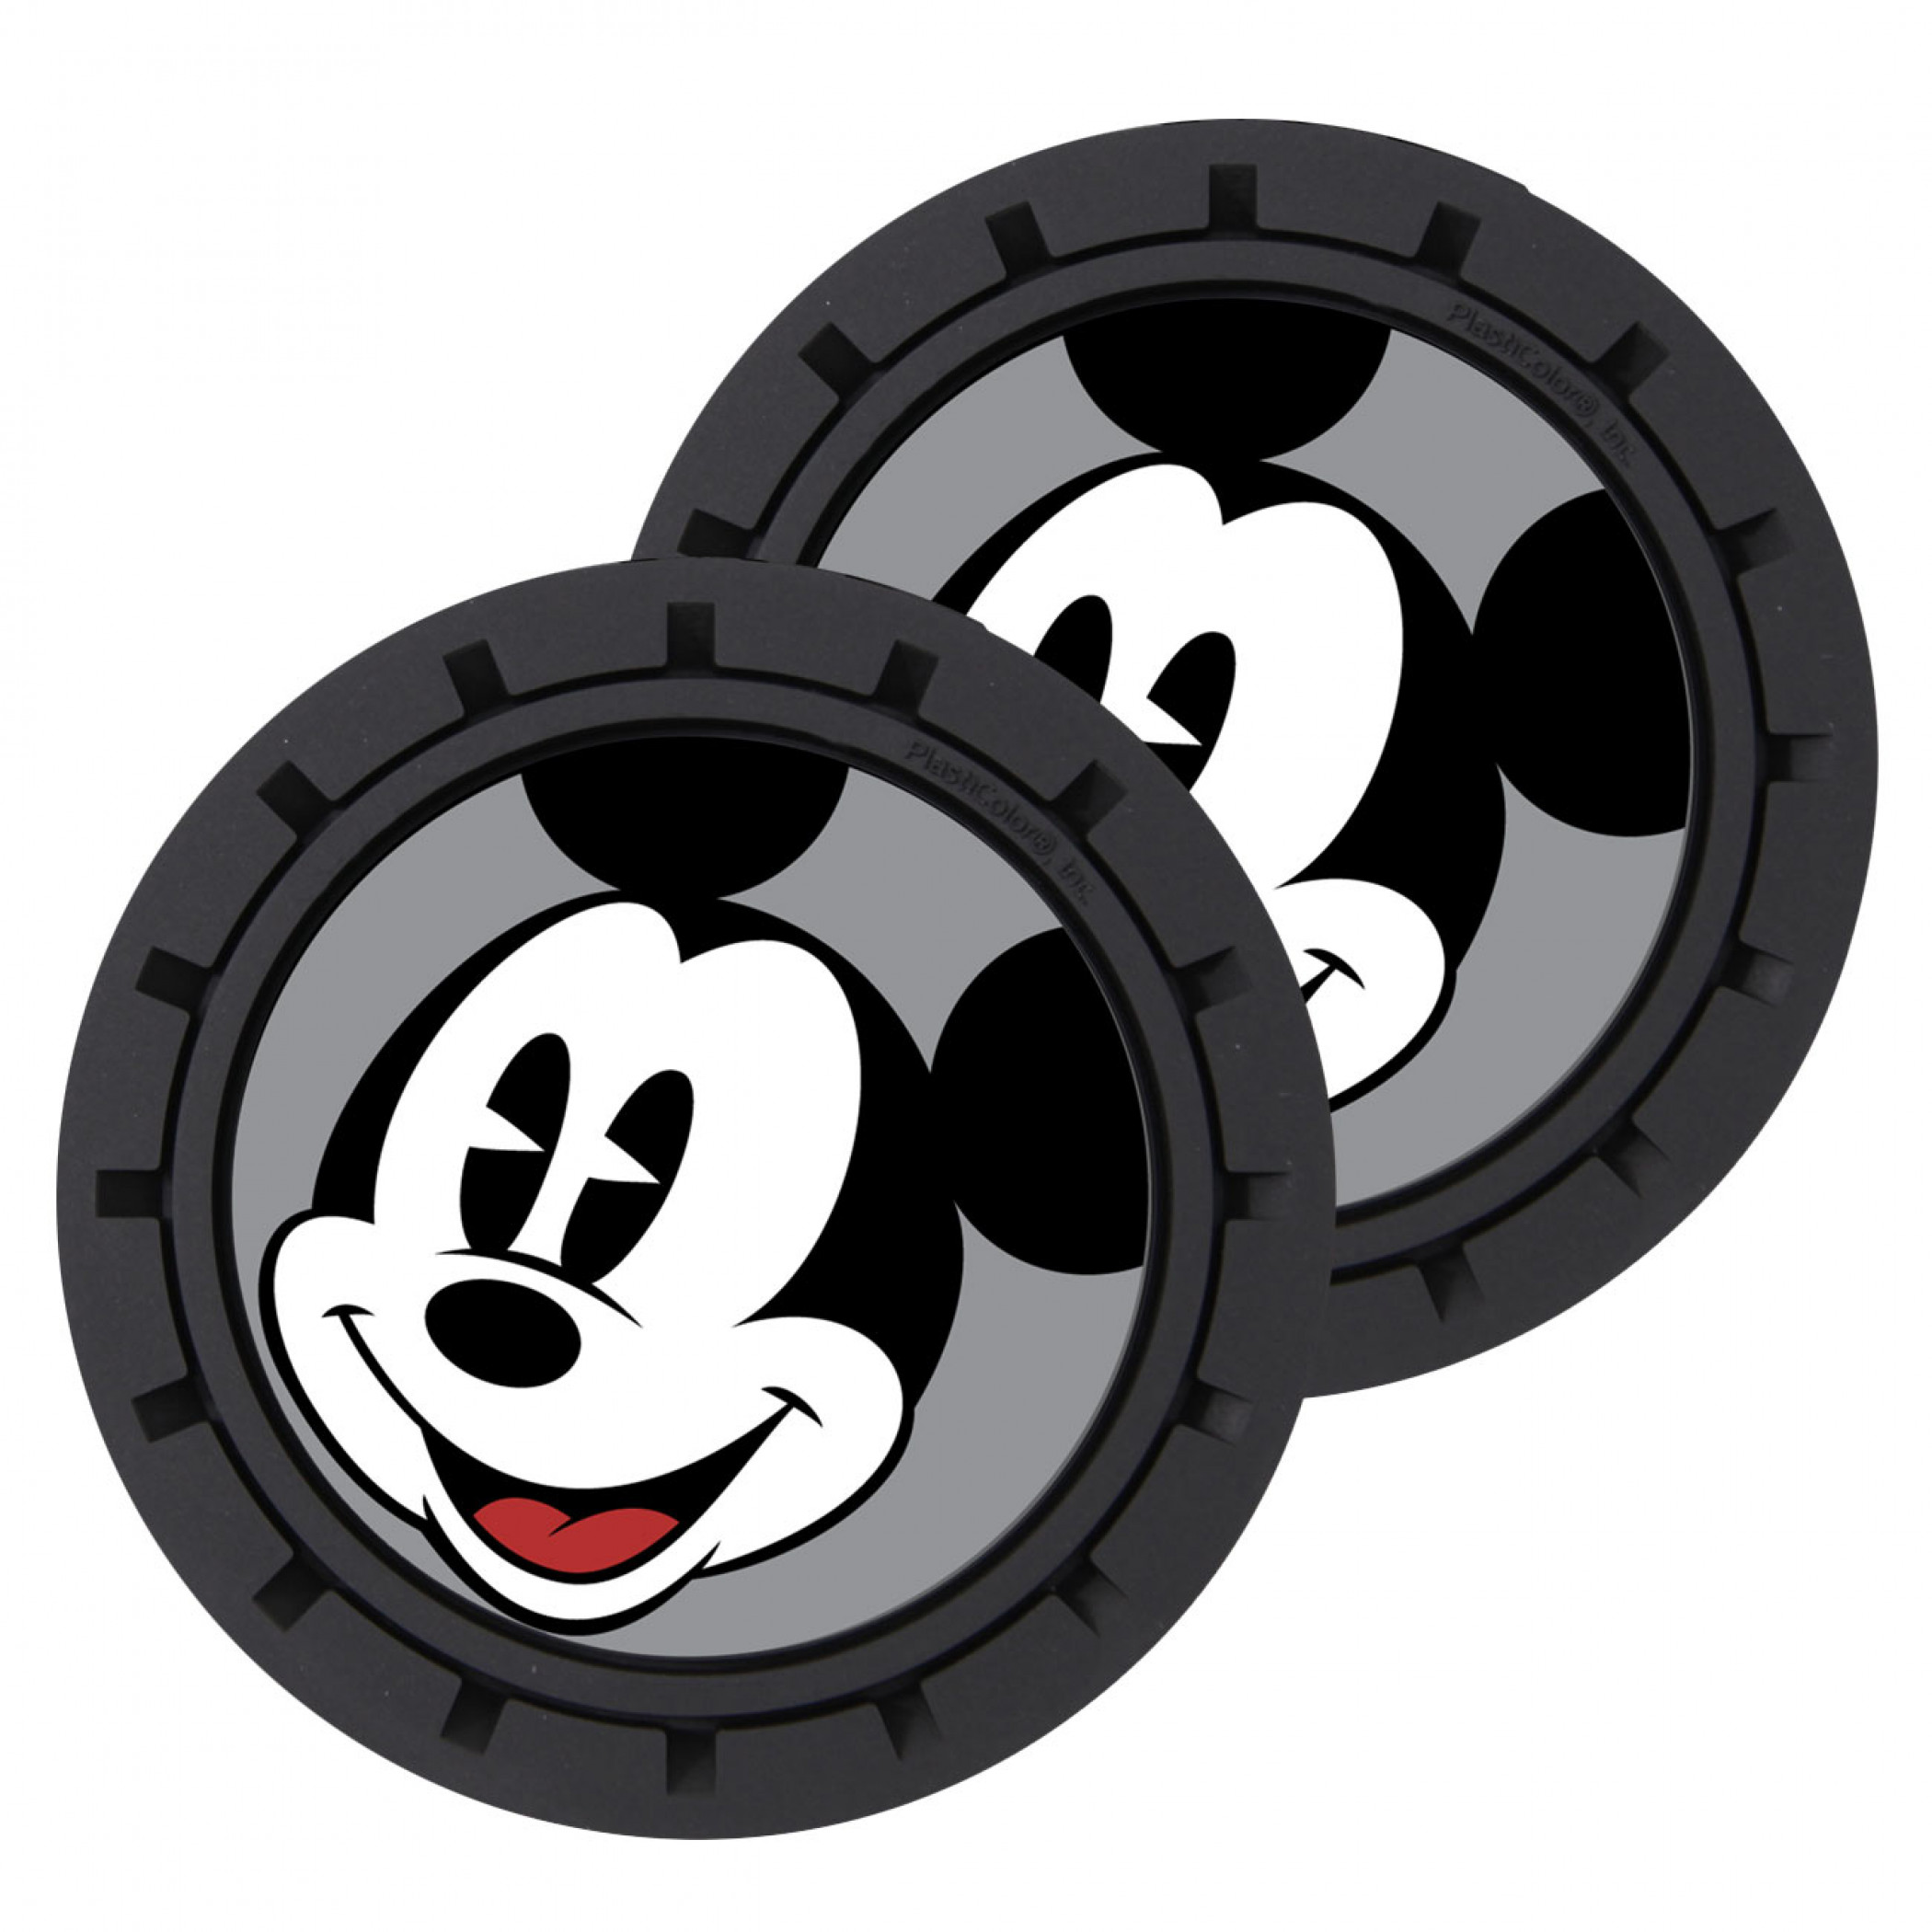 Disney Mickey Mouse Car Cup Holder Coaster 2-Pack